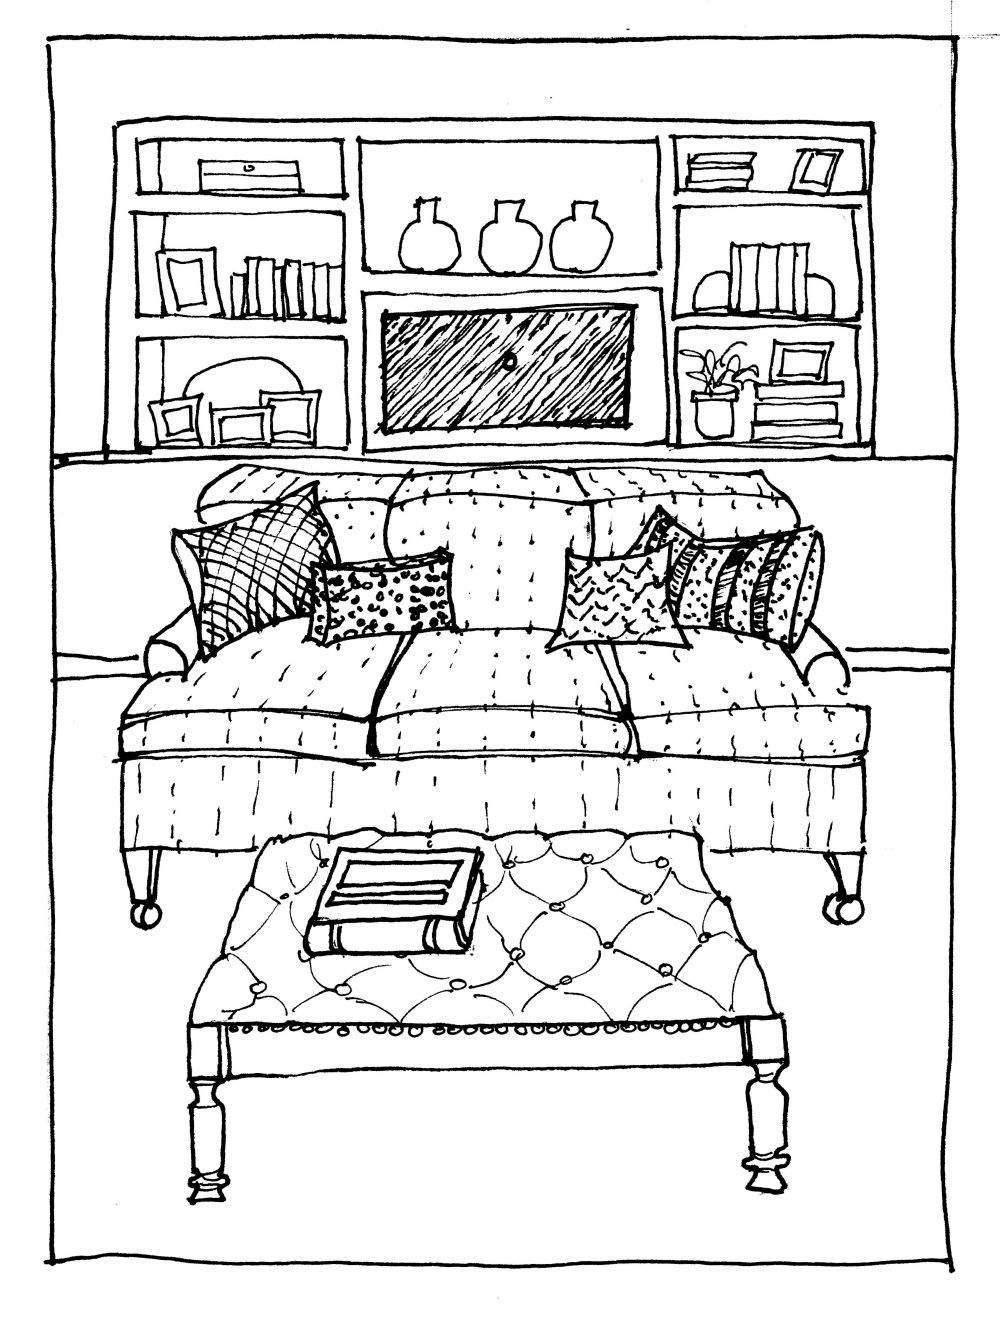 One Perspective Drawing Room: One-Point Perspective Interior Sketch